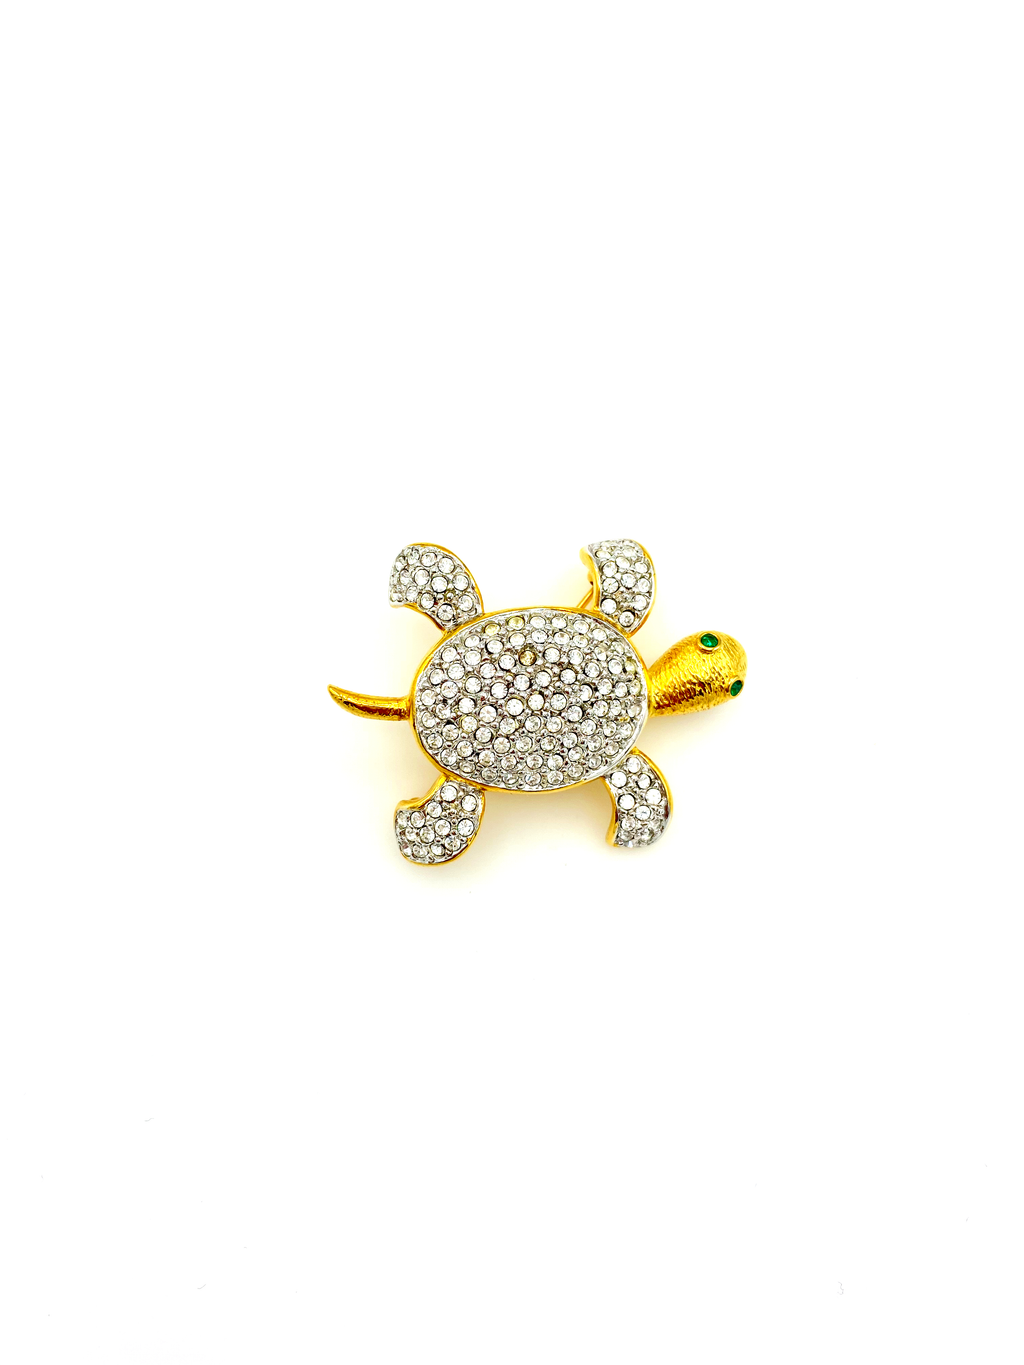 update alt-text with template Joan Rivers Gold Rhinestone Pave Turtle Brooch Pin-Brooches & Pins-Joan Rivers-[trending designer jewelry]-[joan rivers jewelry]-[Sustainable Fashion]